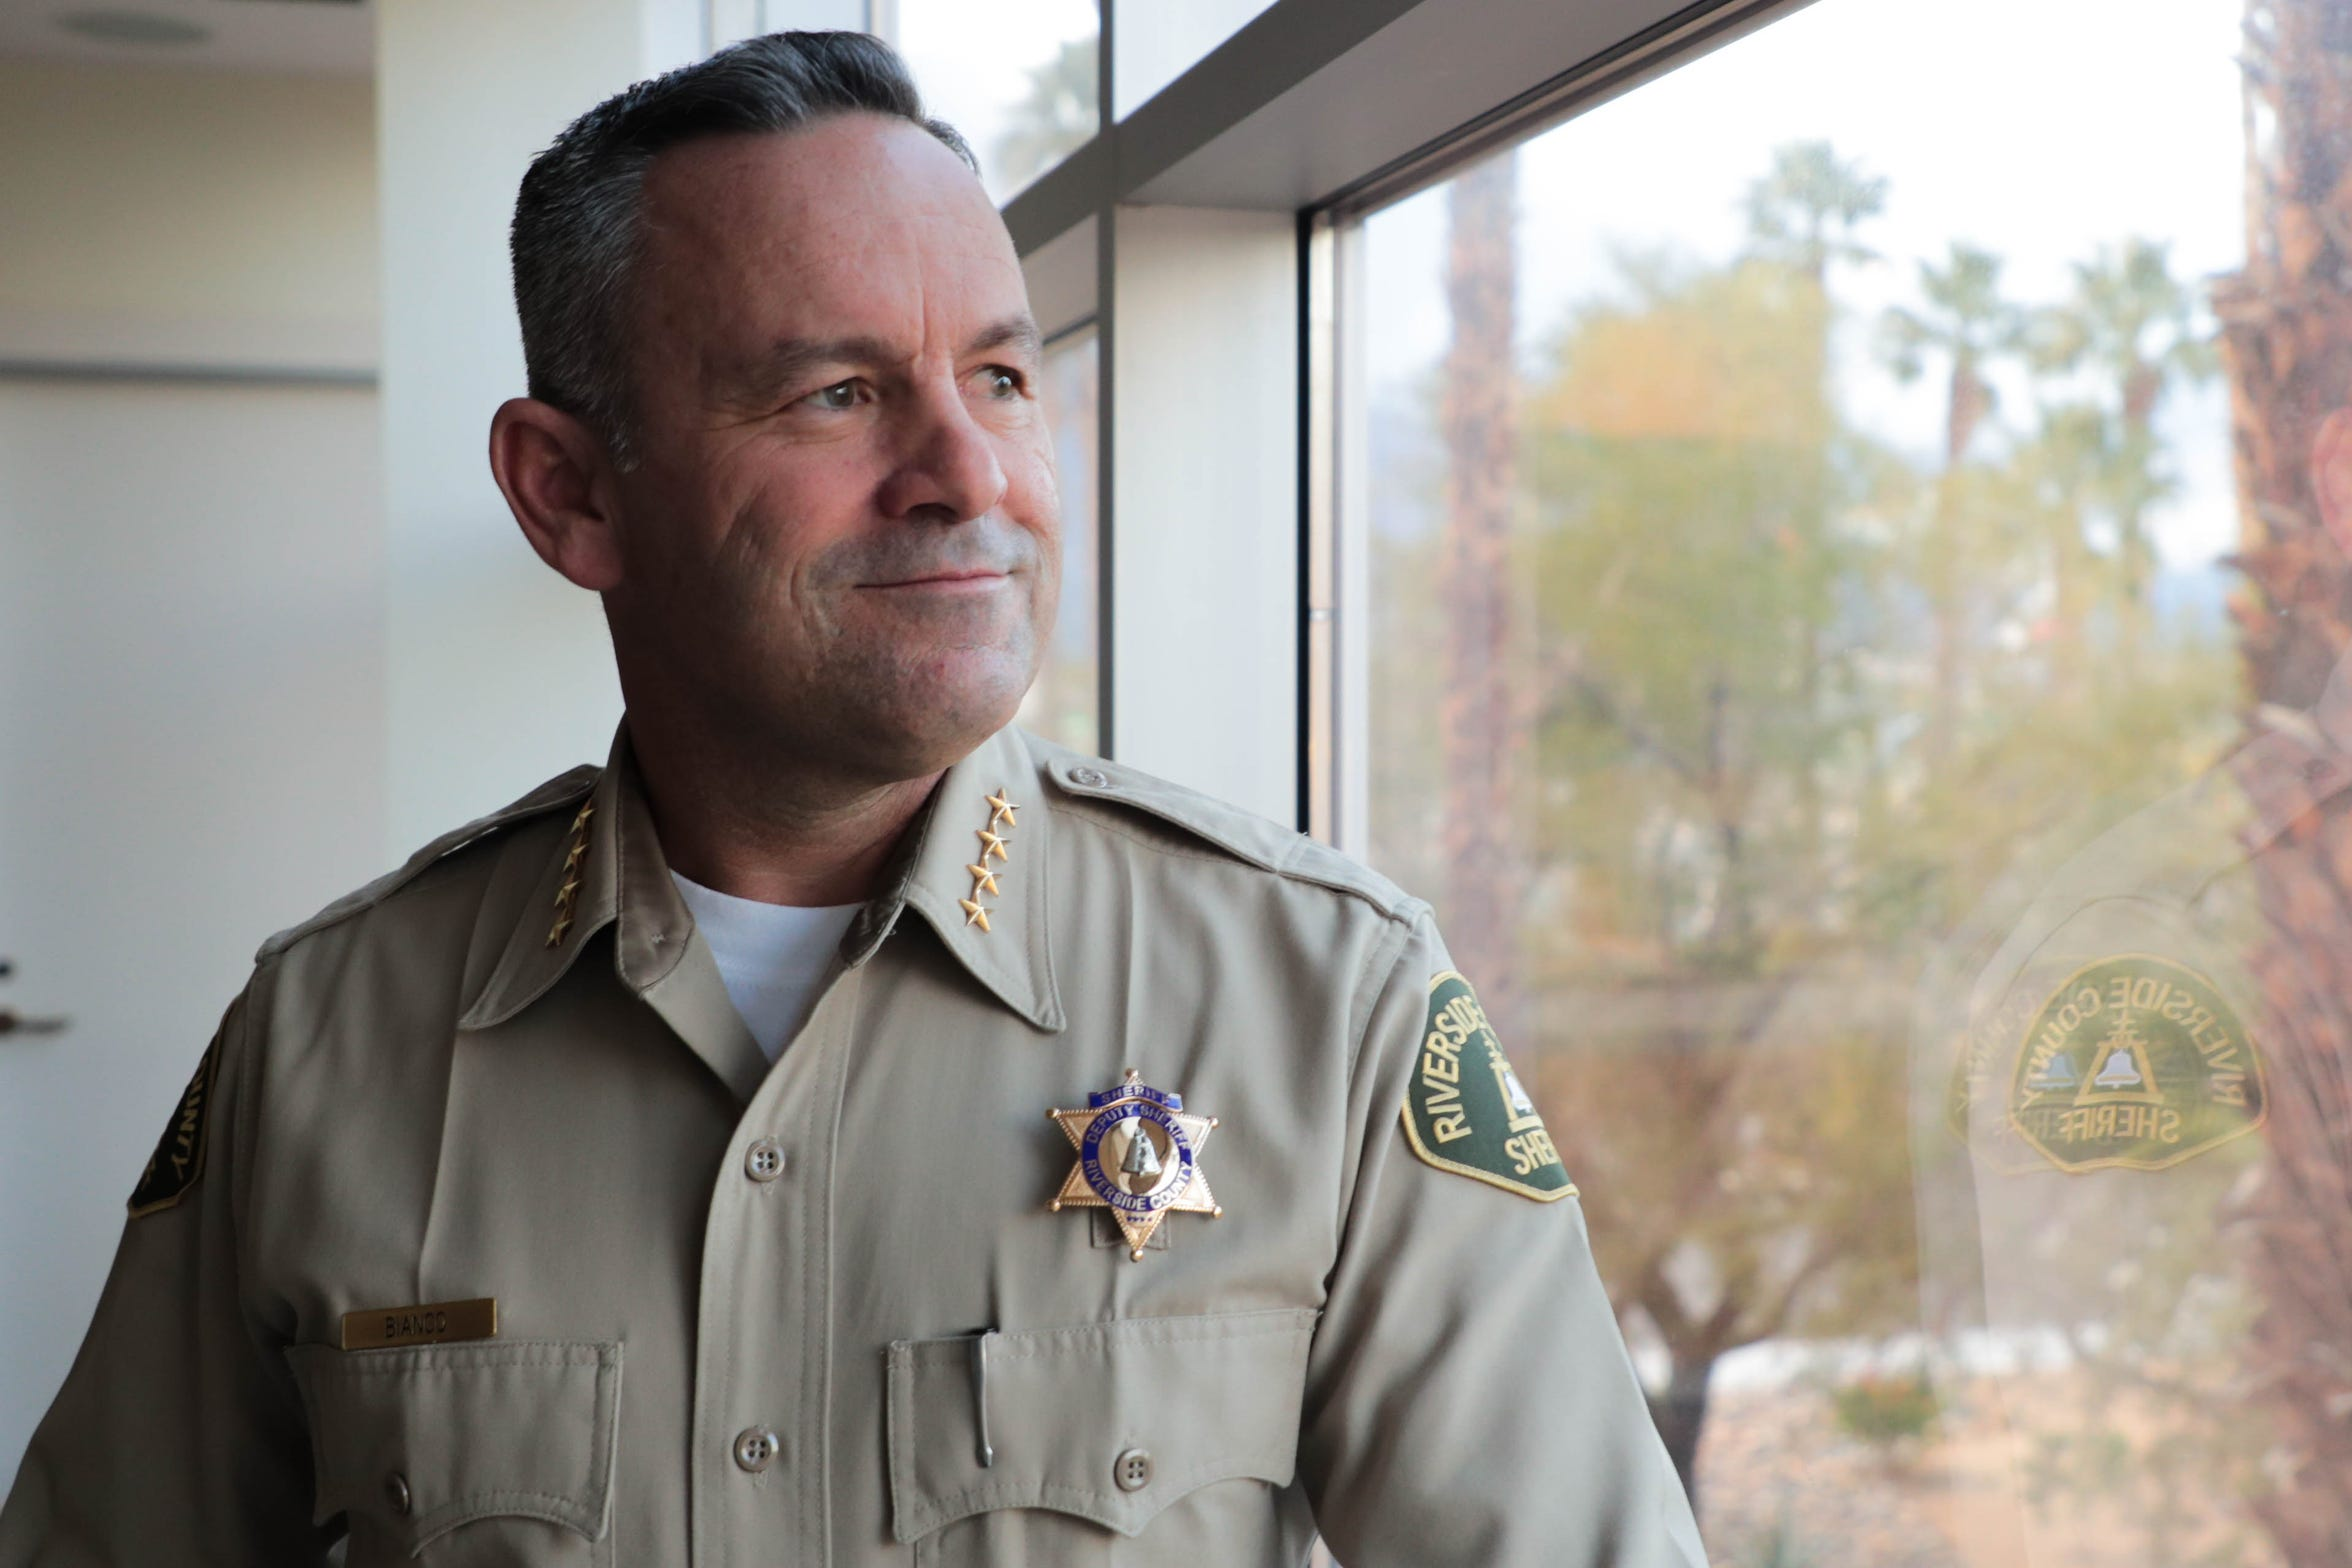 Riverside County Sheriff Chad Bianco blasted former Sheriff Stan Sniff in an exclusive interview with The Desert Sun over the increased amount the department has been charging contract cities for services over the years.